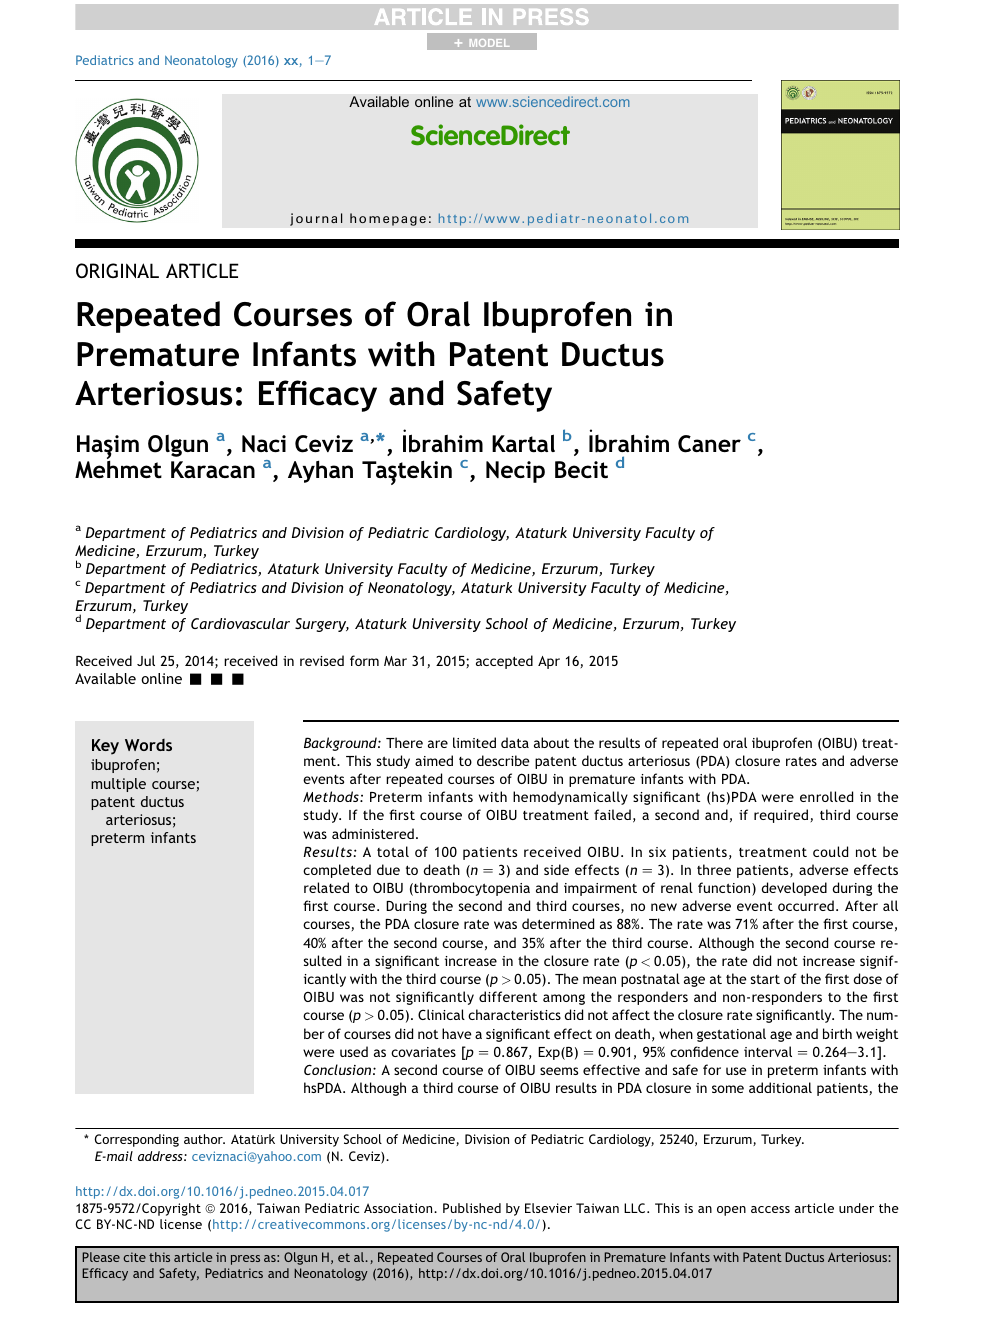 Repeated Courses of Oral Ibuprofen in Premature Infants with